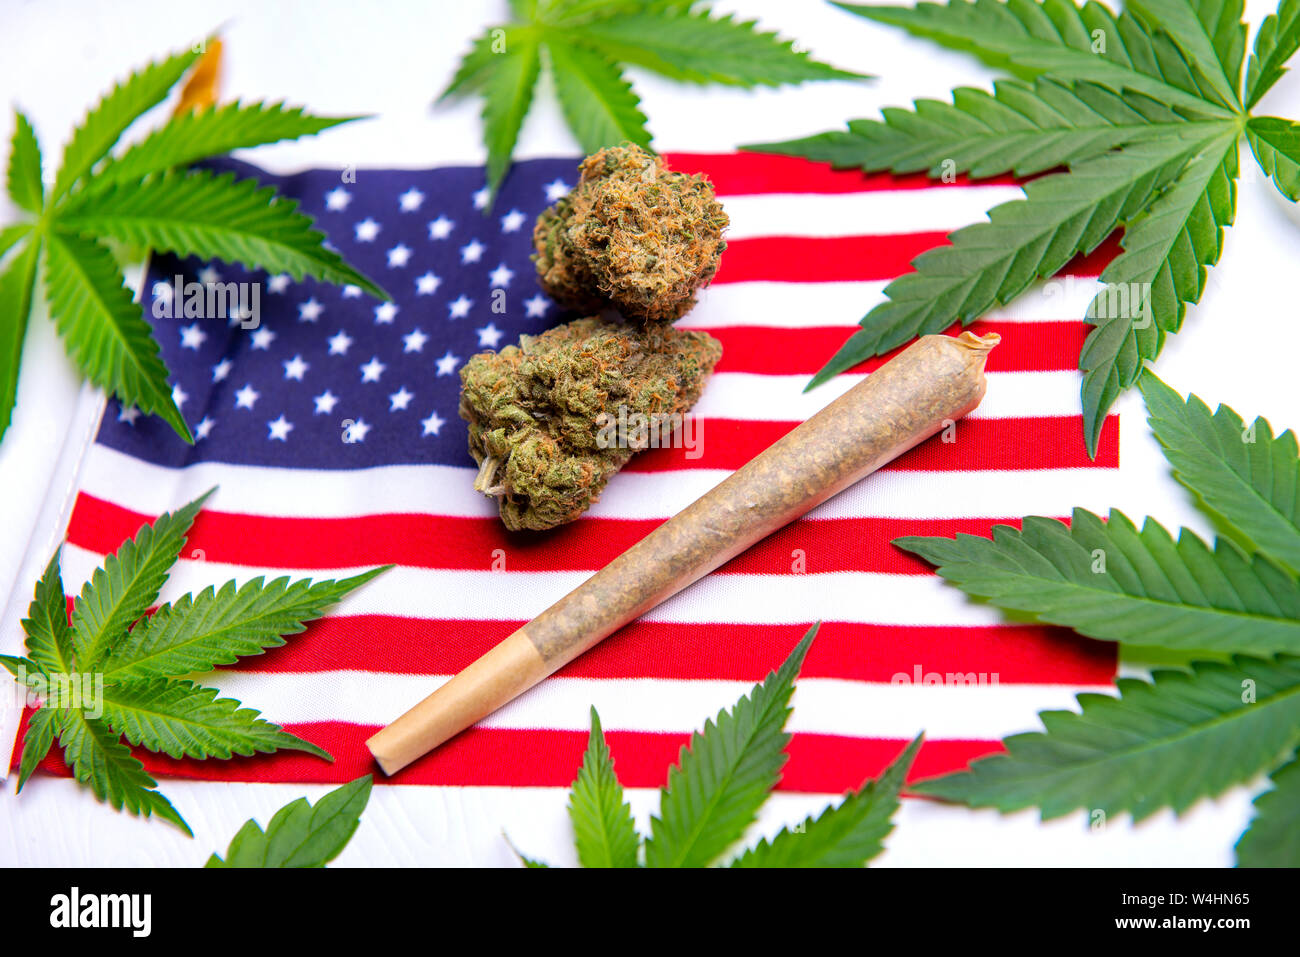 Cannabis leaves, dry nugs and rolled joint over the american flag - veteran theme medical marijuana concept Stock Photo